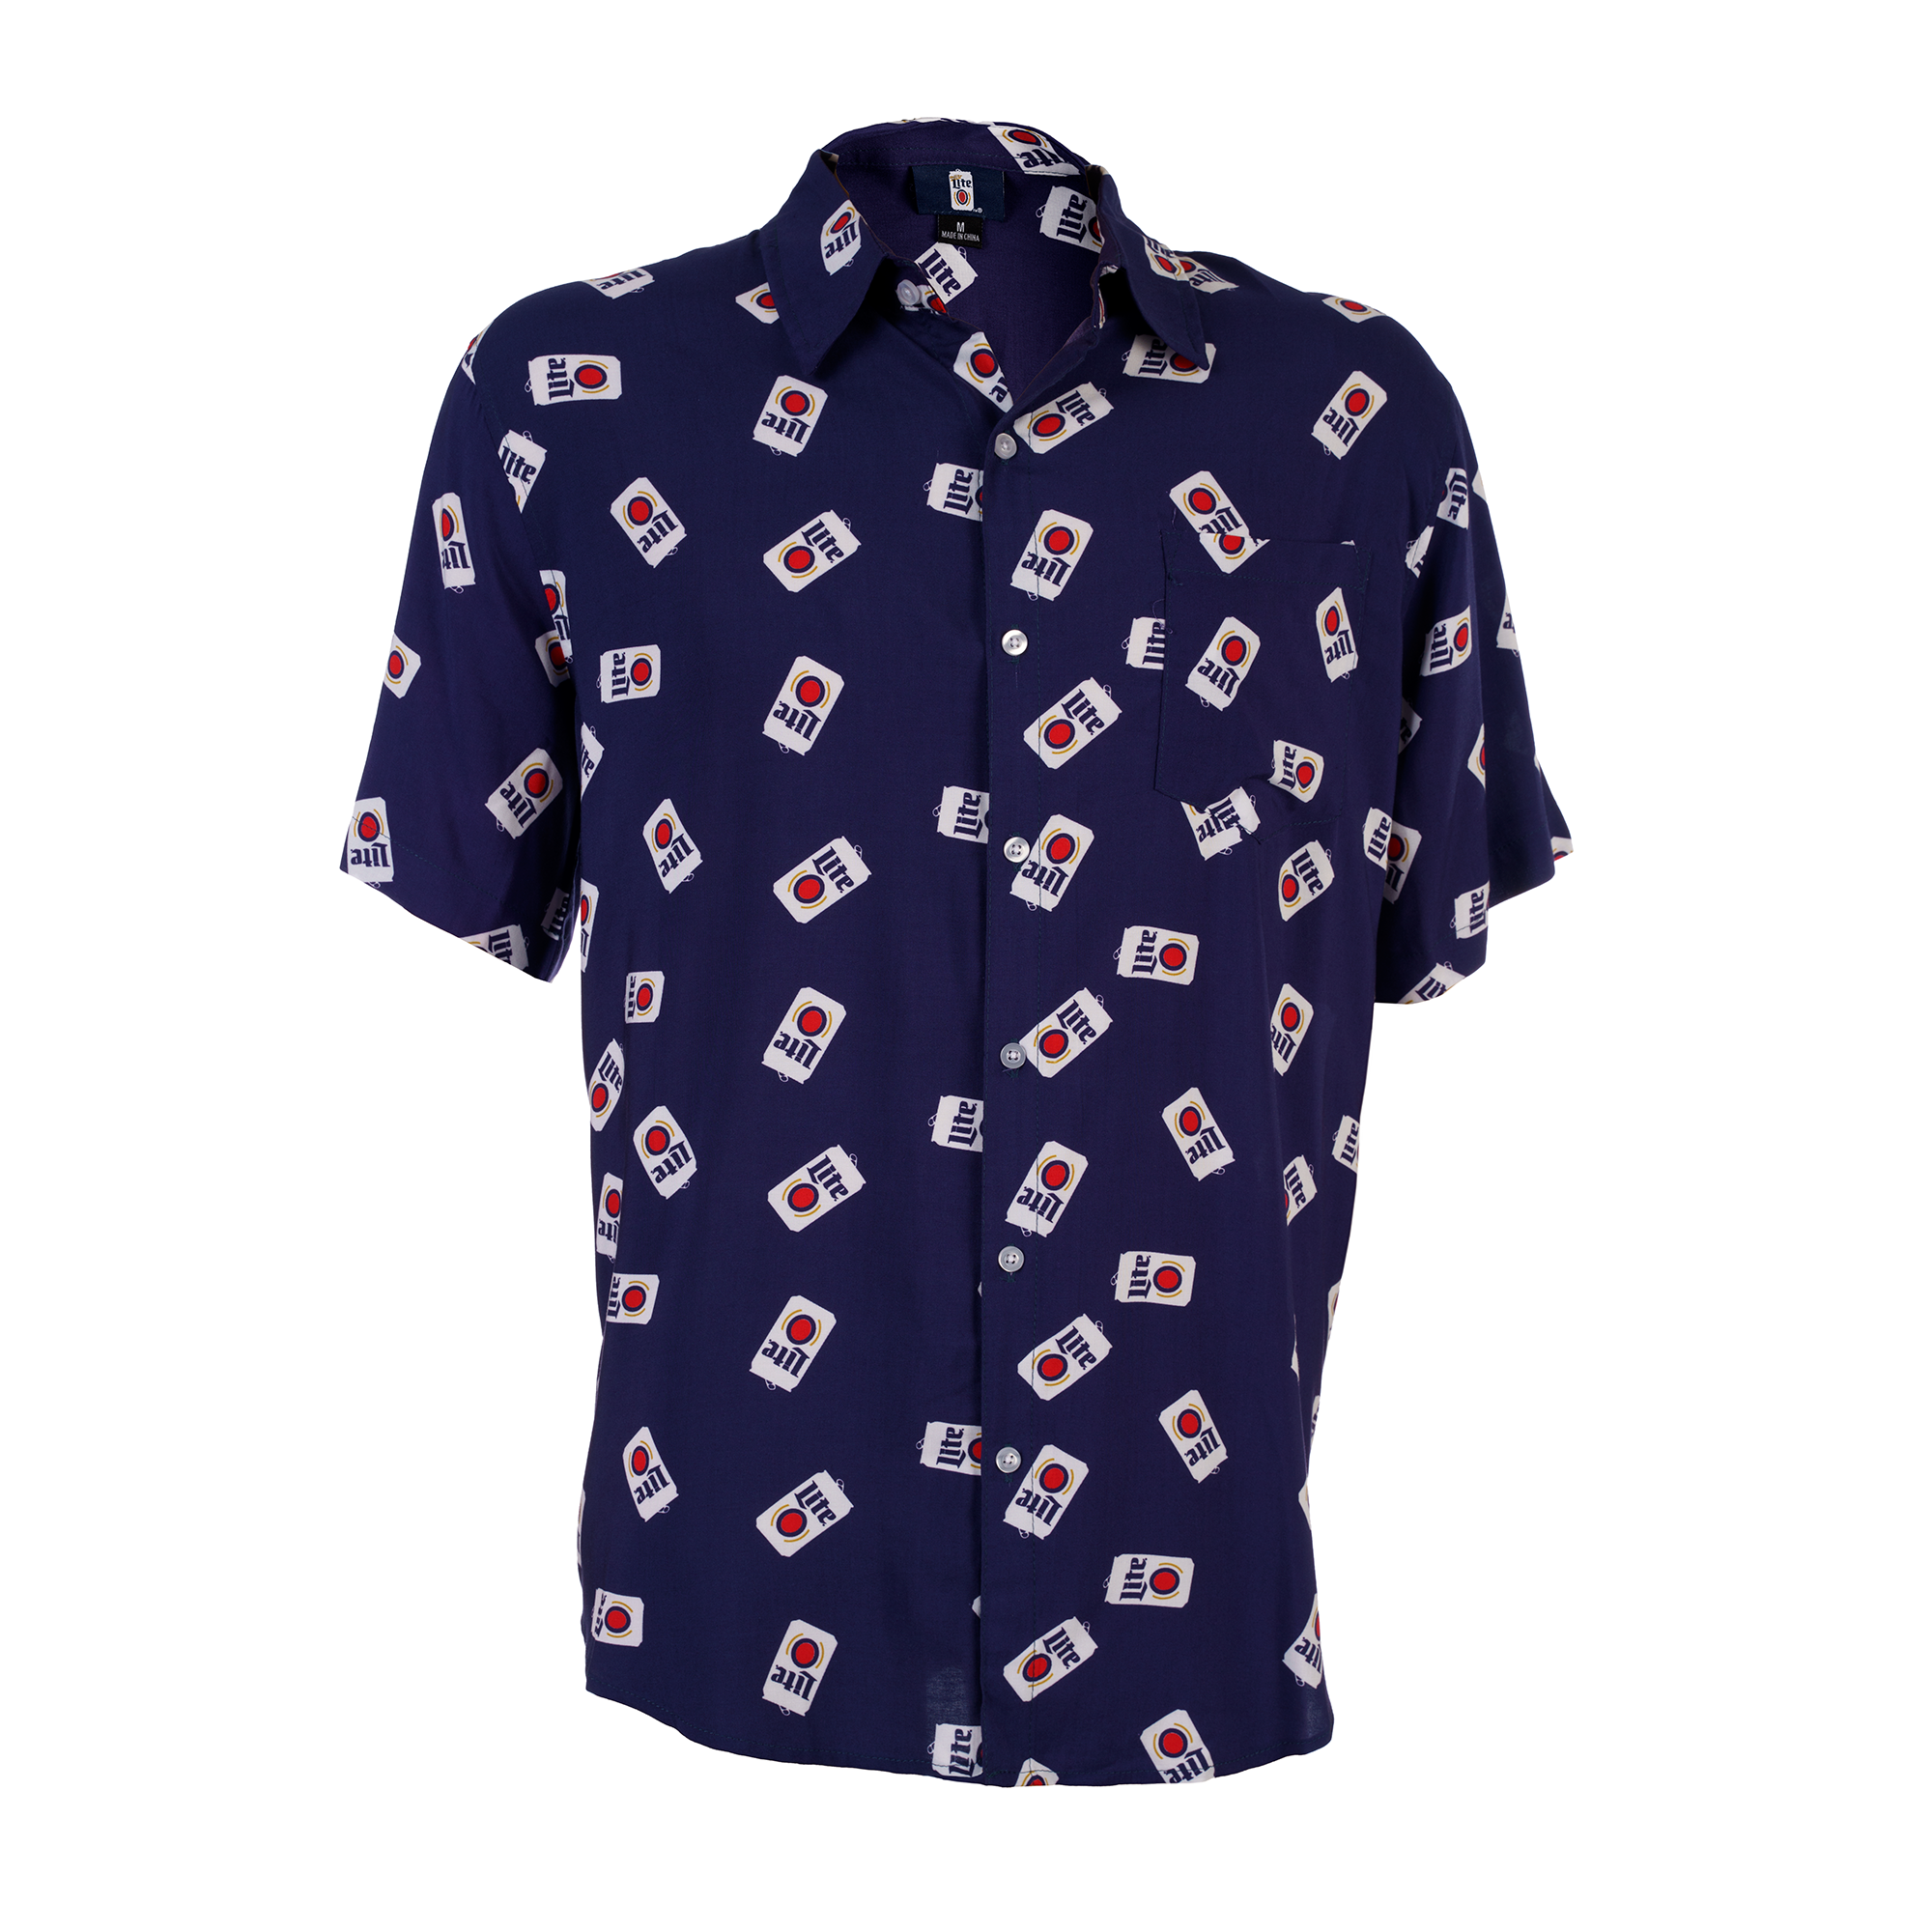 MILLER LITE SHORT SLEEVE UNISEX BUTTON UP